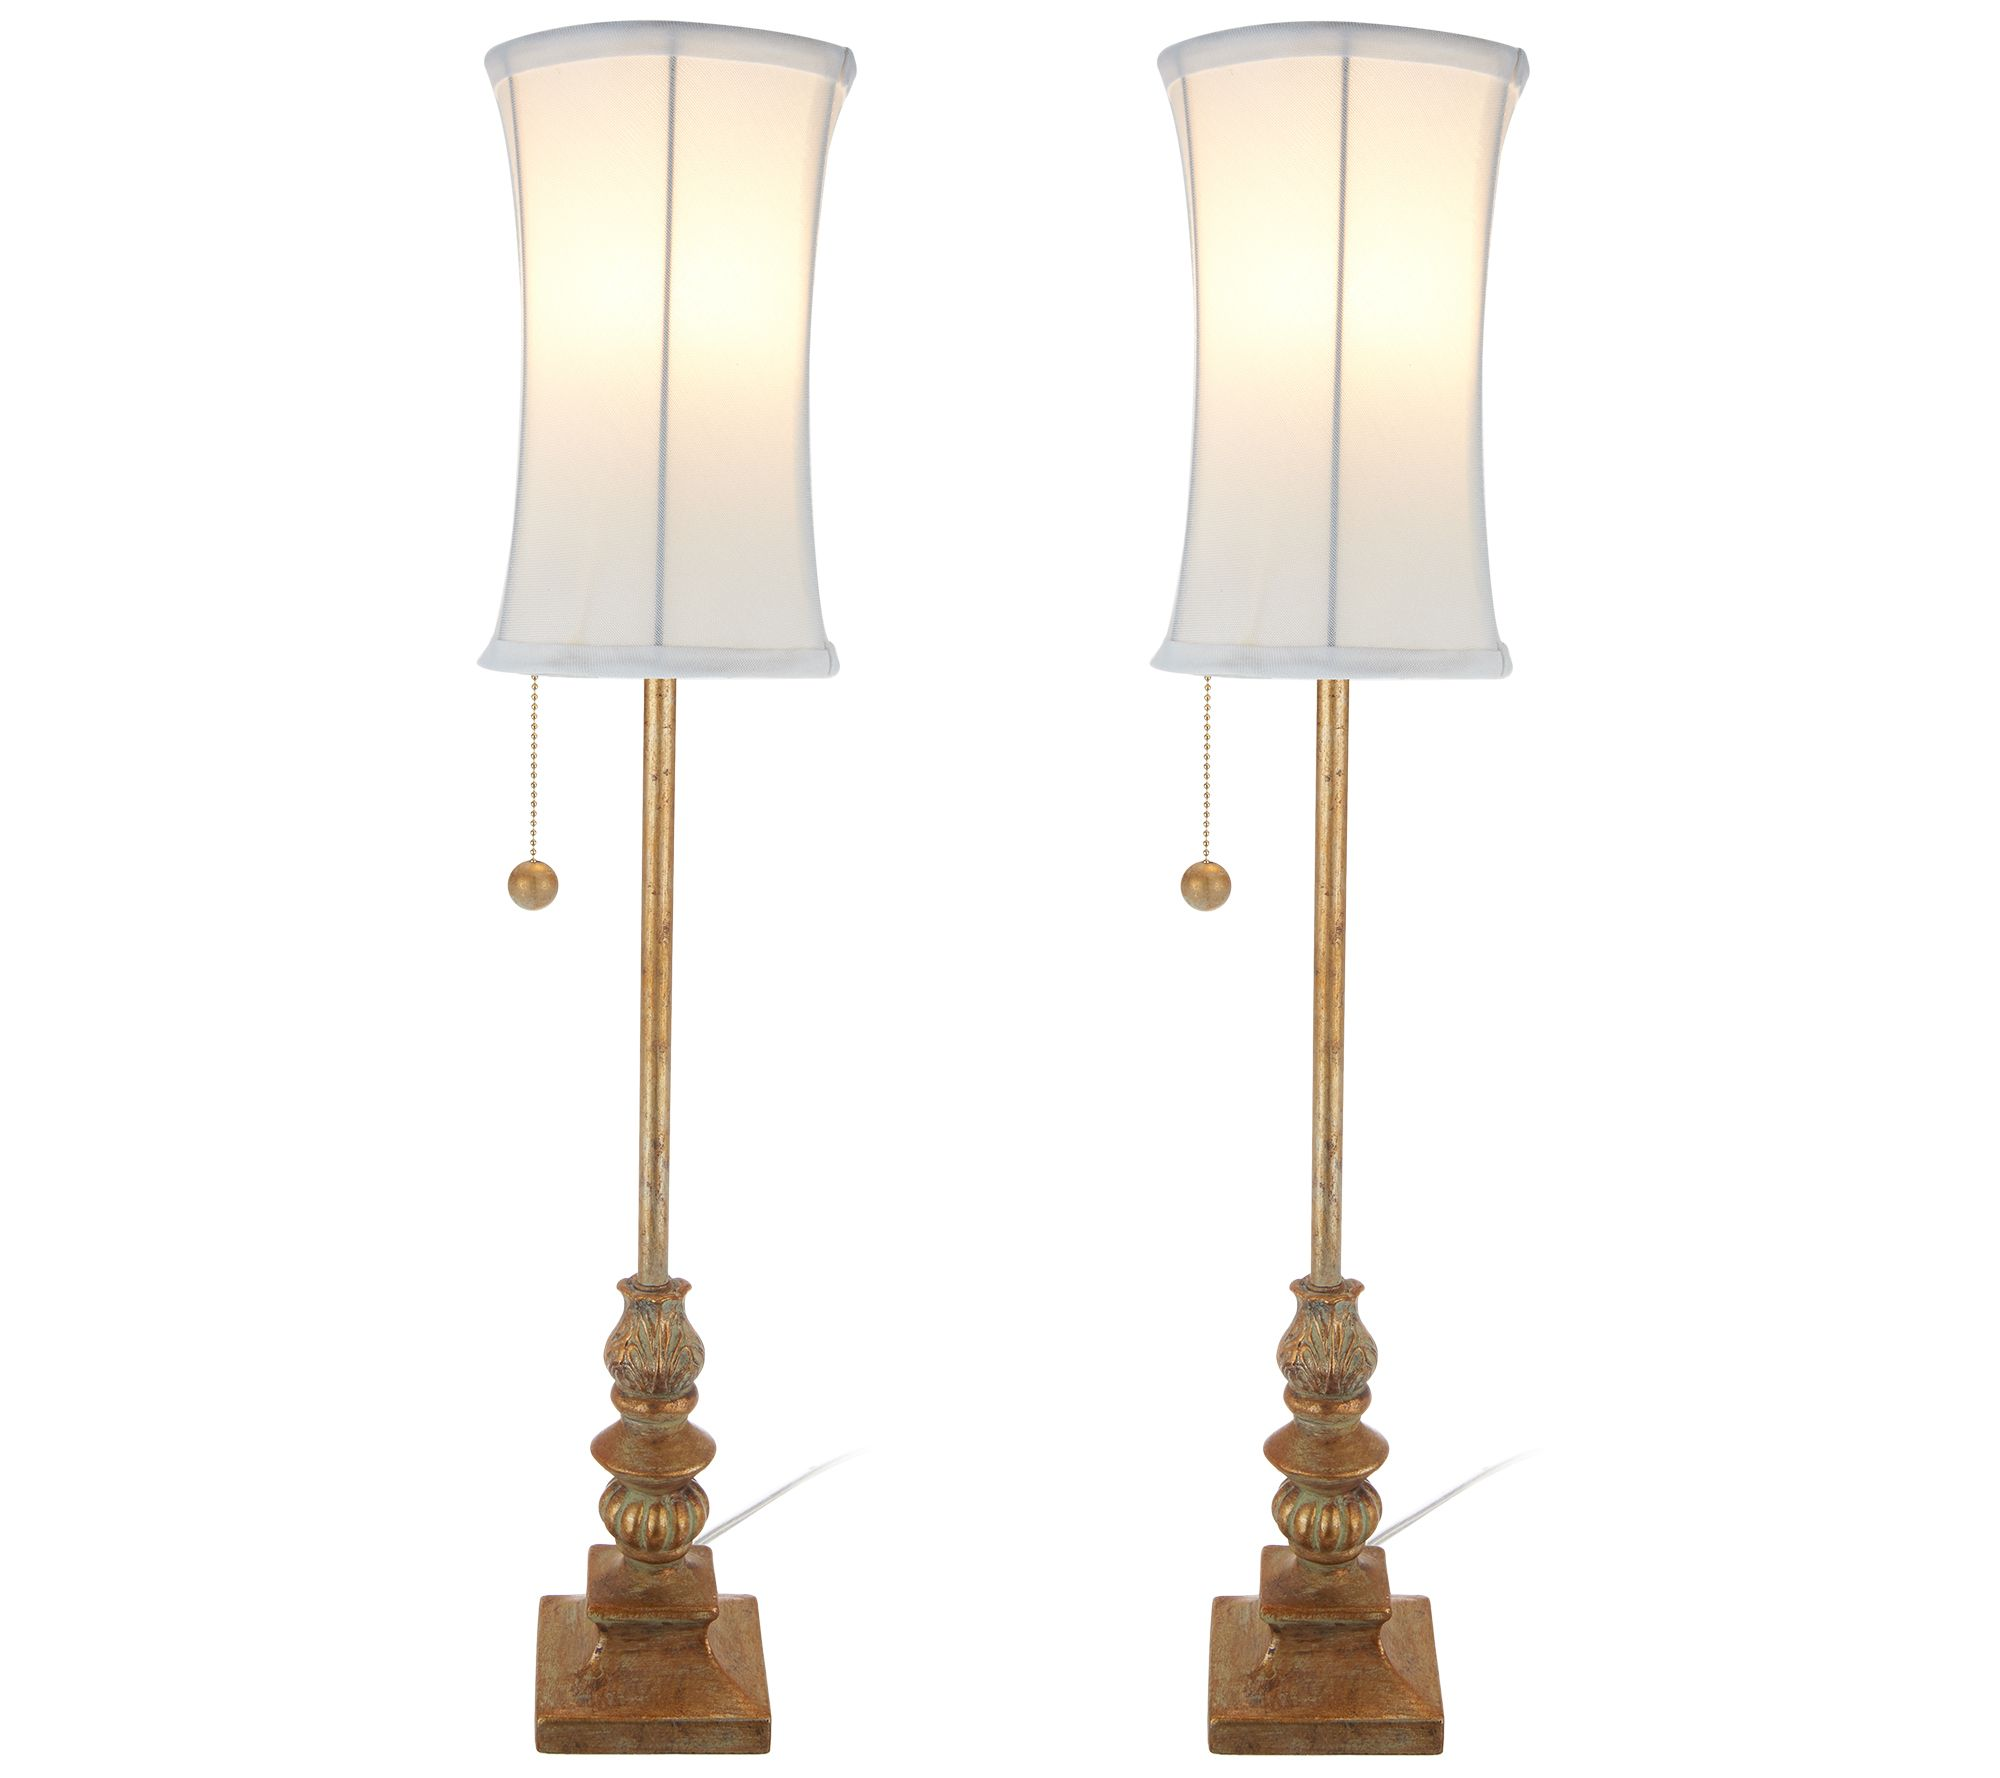 set of 2 antiqued finish 28 5 buffet lamps by valerie page 1 rh qvc com Buffet Lamps Set cheap buffet lamps set of 2